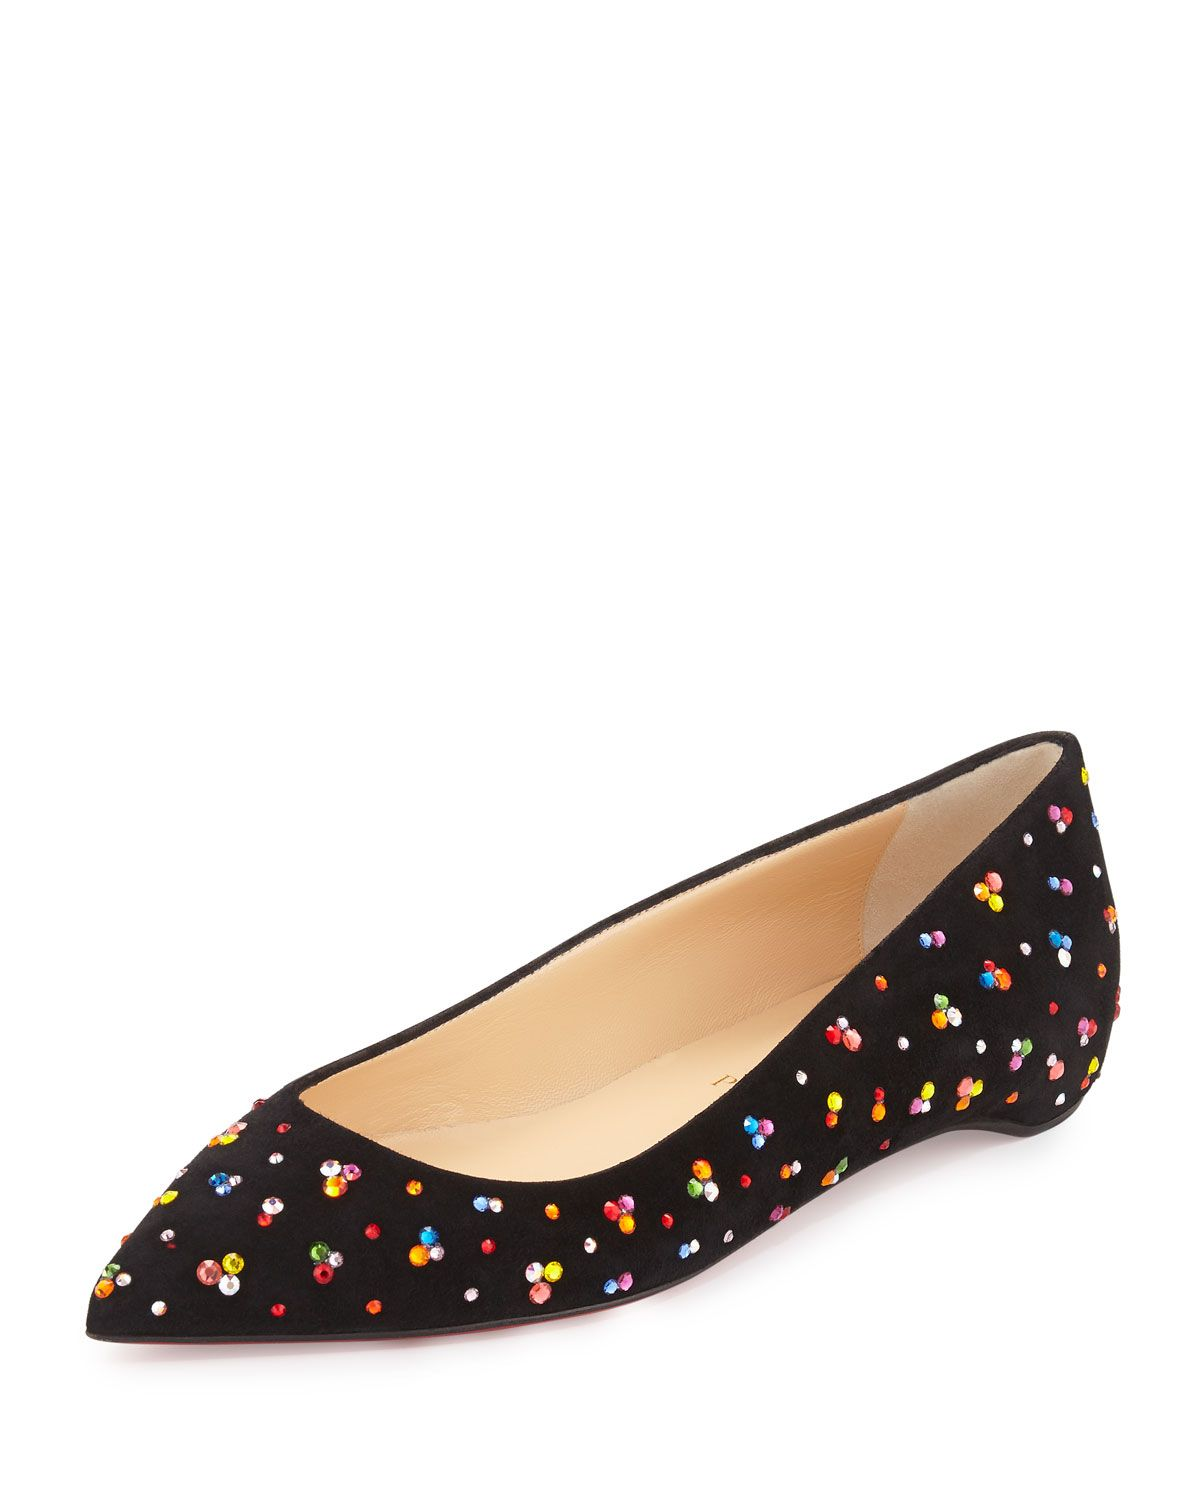 size 40 0a2e4 513d9 Pigalle Follies Embellished Red Sole Skimmer Flat Black ...